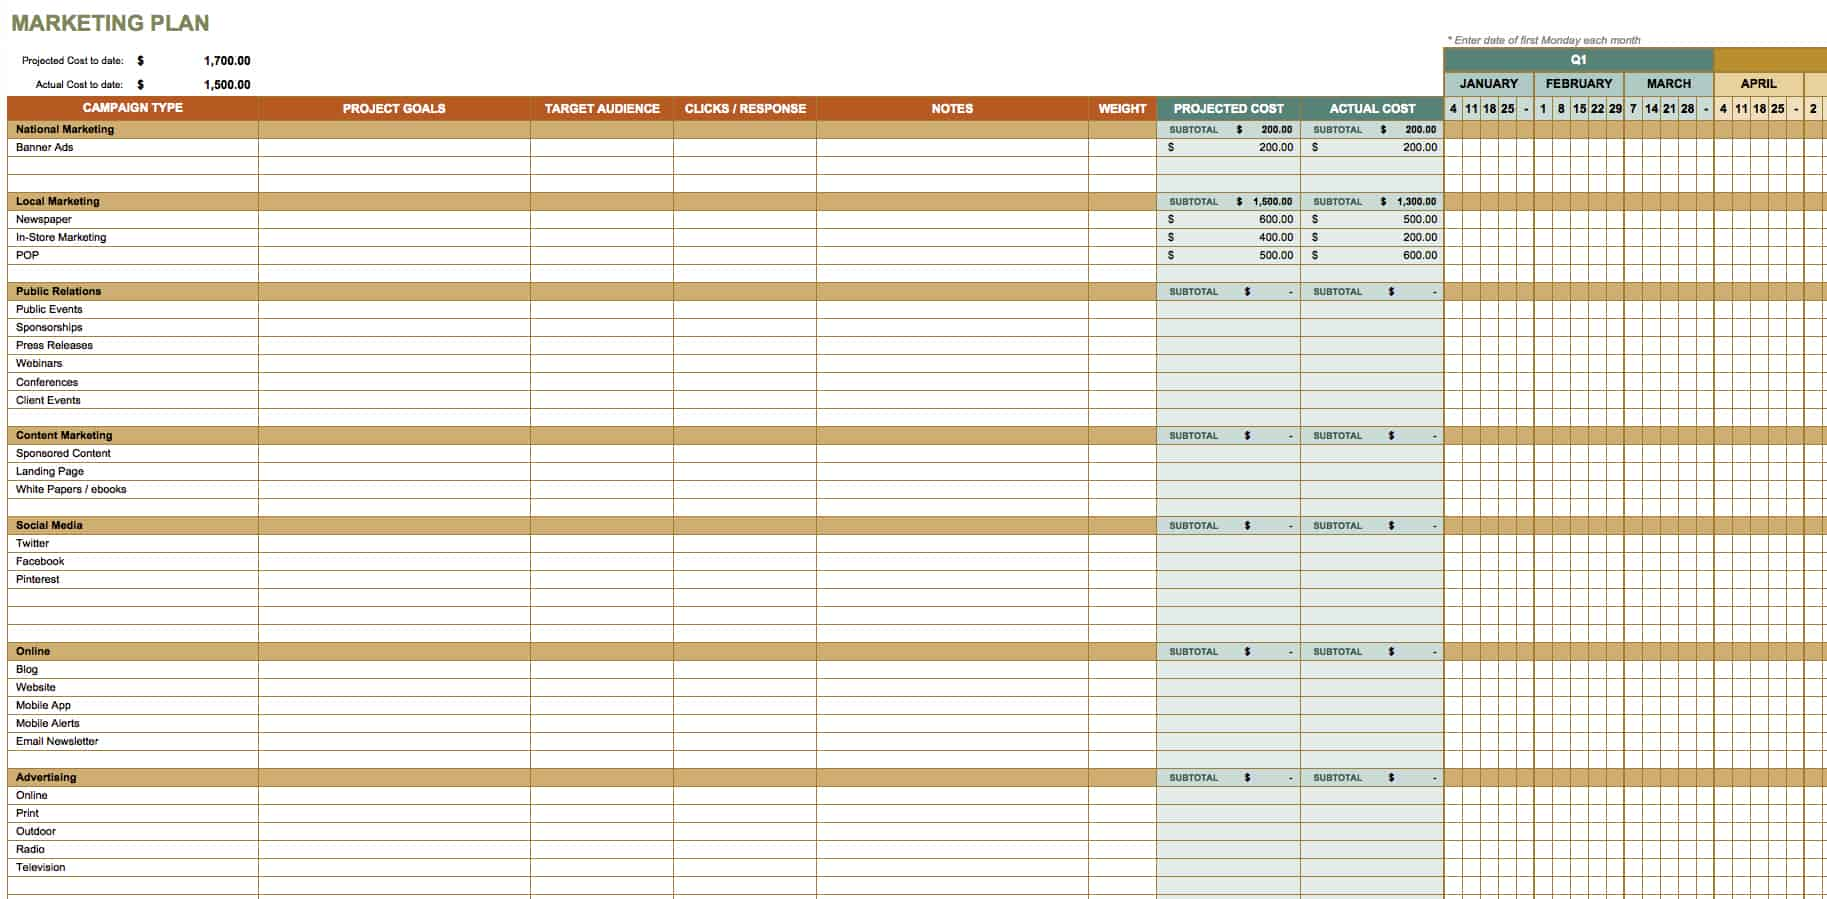 Free Marketing Plan Templates For Excel Smartsheet - Program timeline template excel